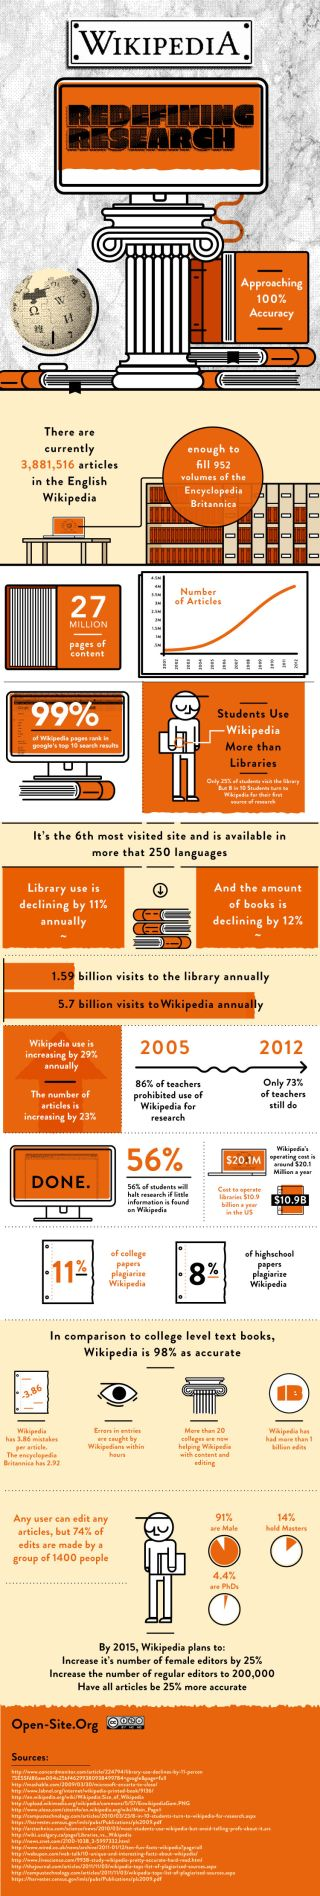 Wikipedia vs Library: Analysis of an Infographic